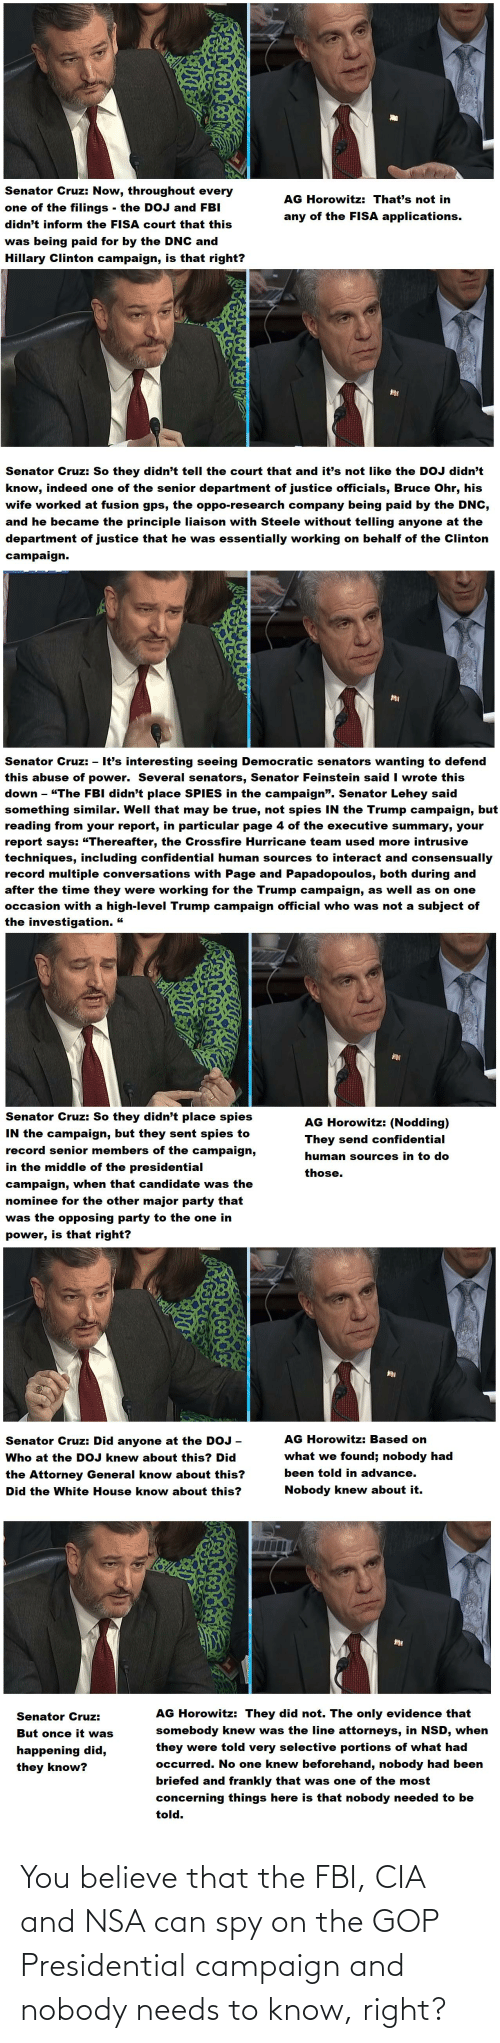 """Fbi, Hillary Clinton, and Party: Senator Cruz: Now, throughout every  AG Horowitz: That's not in  one of the filings - the DOJ and FBI  didn't inform the FISA court that this  any of the FIISA applications.  was being paid for by the DNC and  Hillary Clinton campaign, is that right?  Senator Cruz: So they didn't tell the court that and it's not like the DOJ didn't  know, indeed one of the senior department of justice officials, Bruce Ohr, his  wife worked at fusion gps, the oppo-research company being paid by the DNC,  and he became the principle liaison with Steele without telling anyone at the  department of justice that he was essentially working on behalf of the Clinton  campaign.  Senator Cruz: - It's interesting seeing Democratic senators wanting to defend  this abuse of power. Several senators, Senator Feinstein said I wrote this  down - """"The FBI didn't place SPIES in the campaign"""". Senator Lehey said  something similar. Well that may be true, not spies IN the Trump campaign, but  reading from your report, in particular page 4 of the executive summary, your  report says: """"Thereafter, the Crossfire Hurricane team used more intrusive  techniques, including confidential human sources to interact and consensually  record multiple conversations with Page and Papadopoulos, both during and  after the time they were working for the Trump campaign, as well as on one  occasion with a high-level Trump campaign official who was not a subject of  the investigation. """"  Senator Cruz: So they didn't place spies  IN the campaign, but they sent spies to  record senior members of the campaign,  AG Horowitz: (Nodding)  They send confidential  human sources in to do  in the middle of the presidential  those.  campaign, when that candidate was the  nominee for the other major party that  was the opposing party to the one in  is that right?  power,  AG Horowitz: Based on  Senator Cruz: Did anyone at the DOJ  what we found; nobody had  Who at the DOJ knew about this? Did  been told """